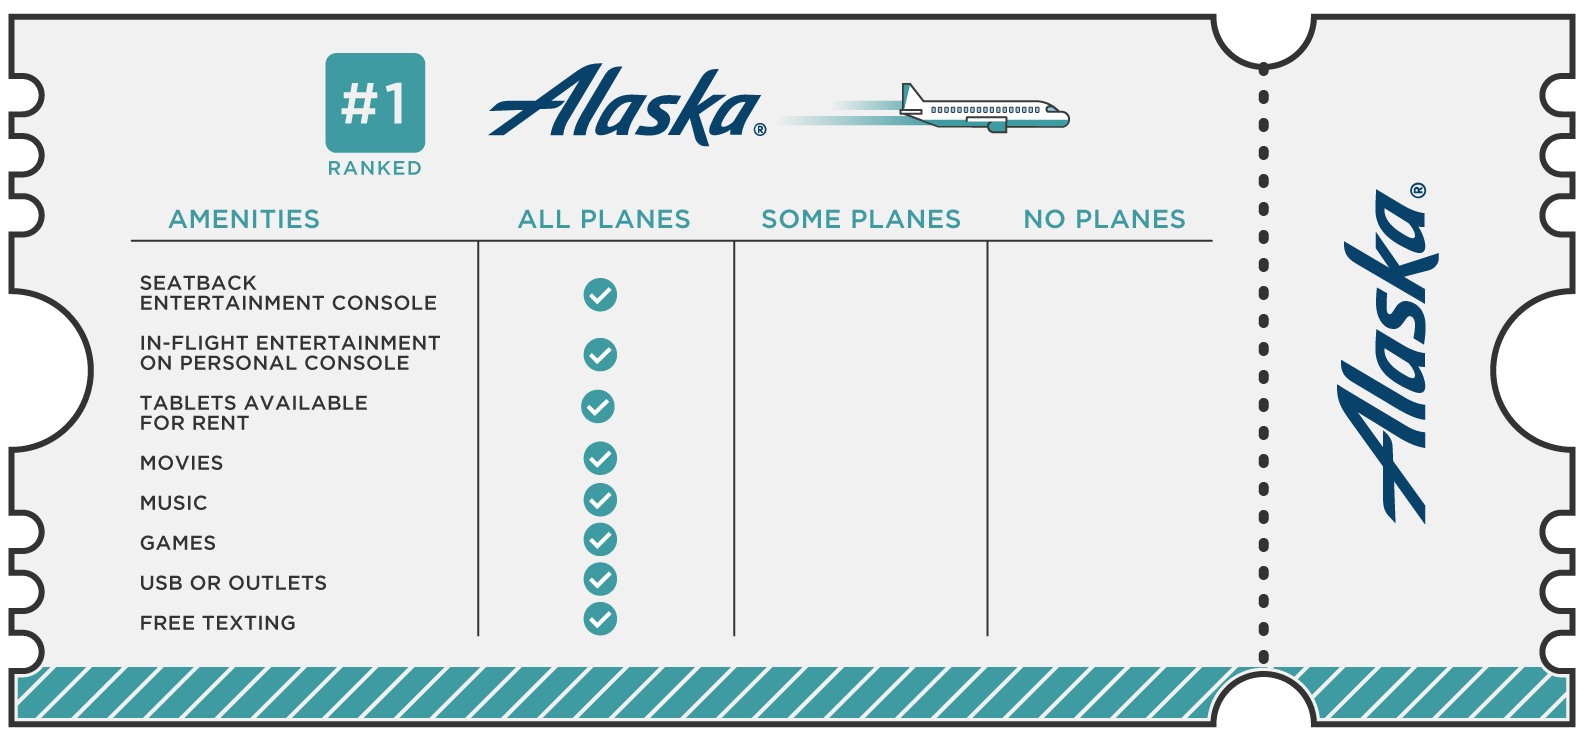 Alaska received top marks for all categories analyzed. (Image: CableTV.com)